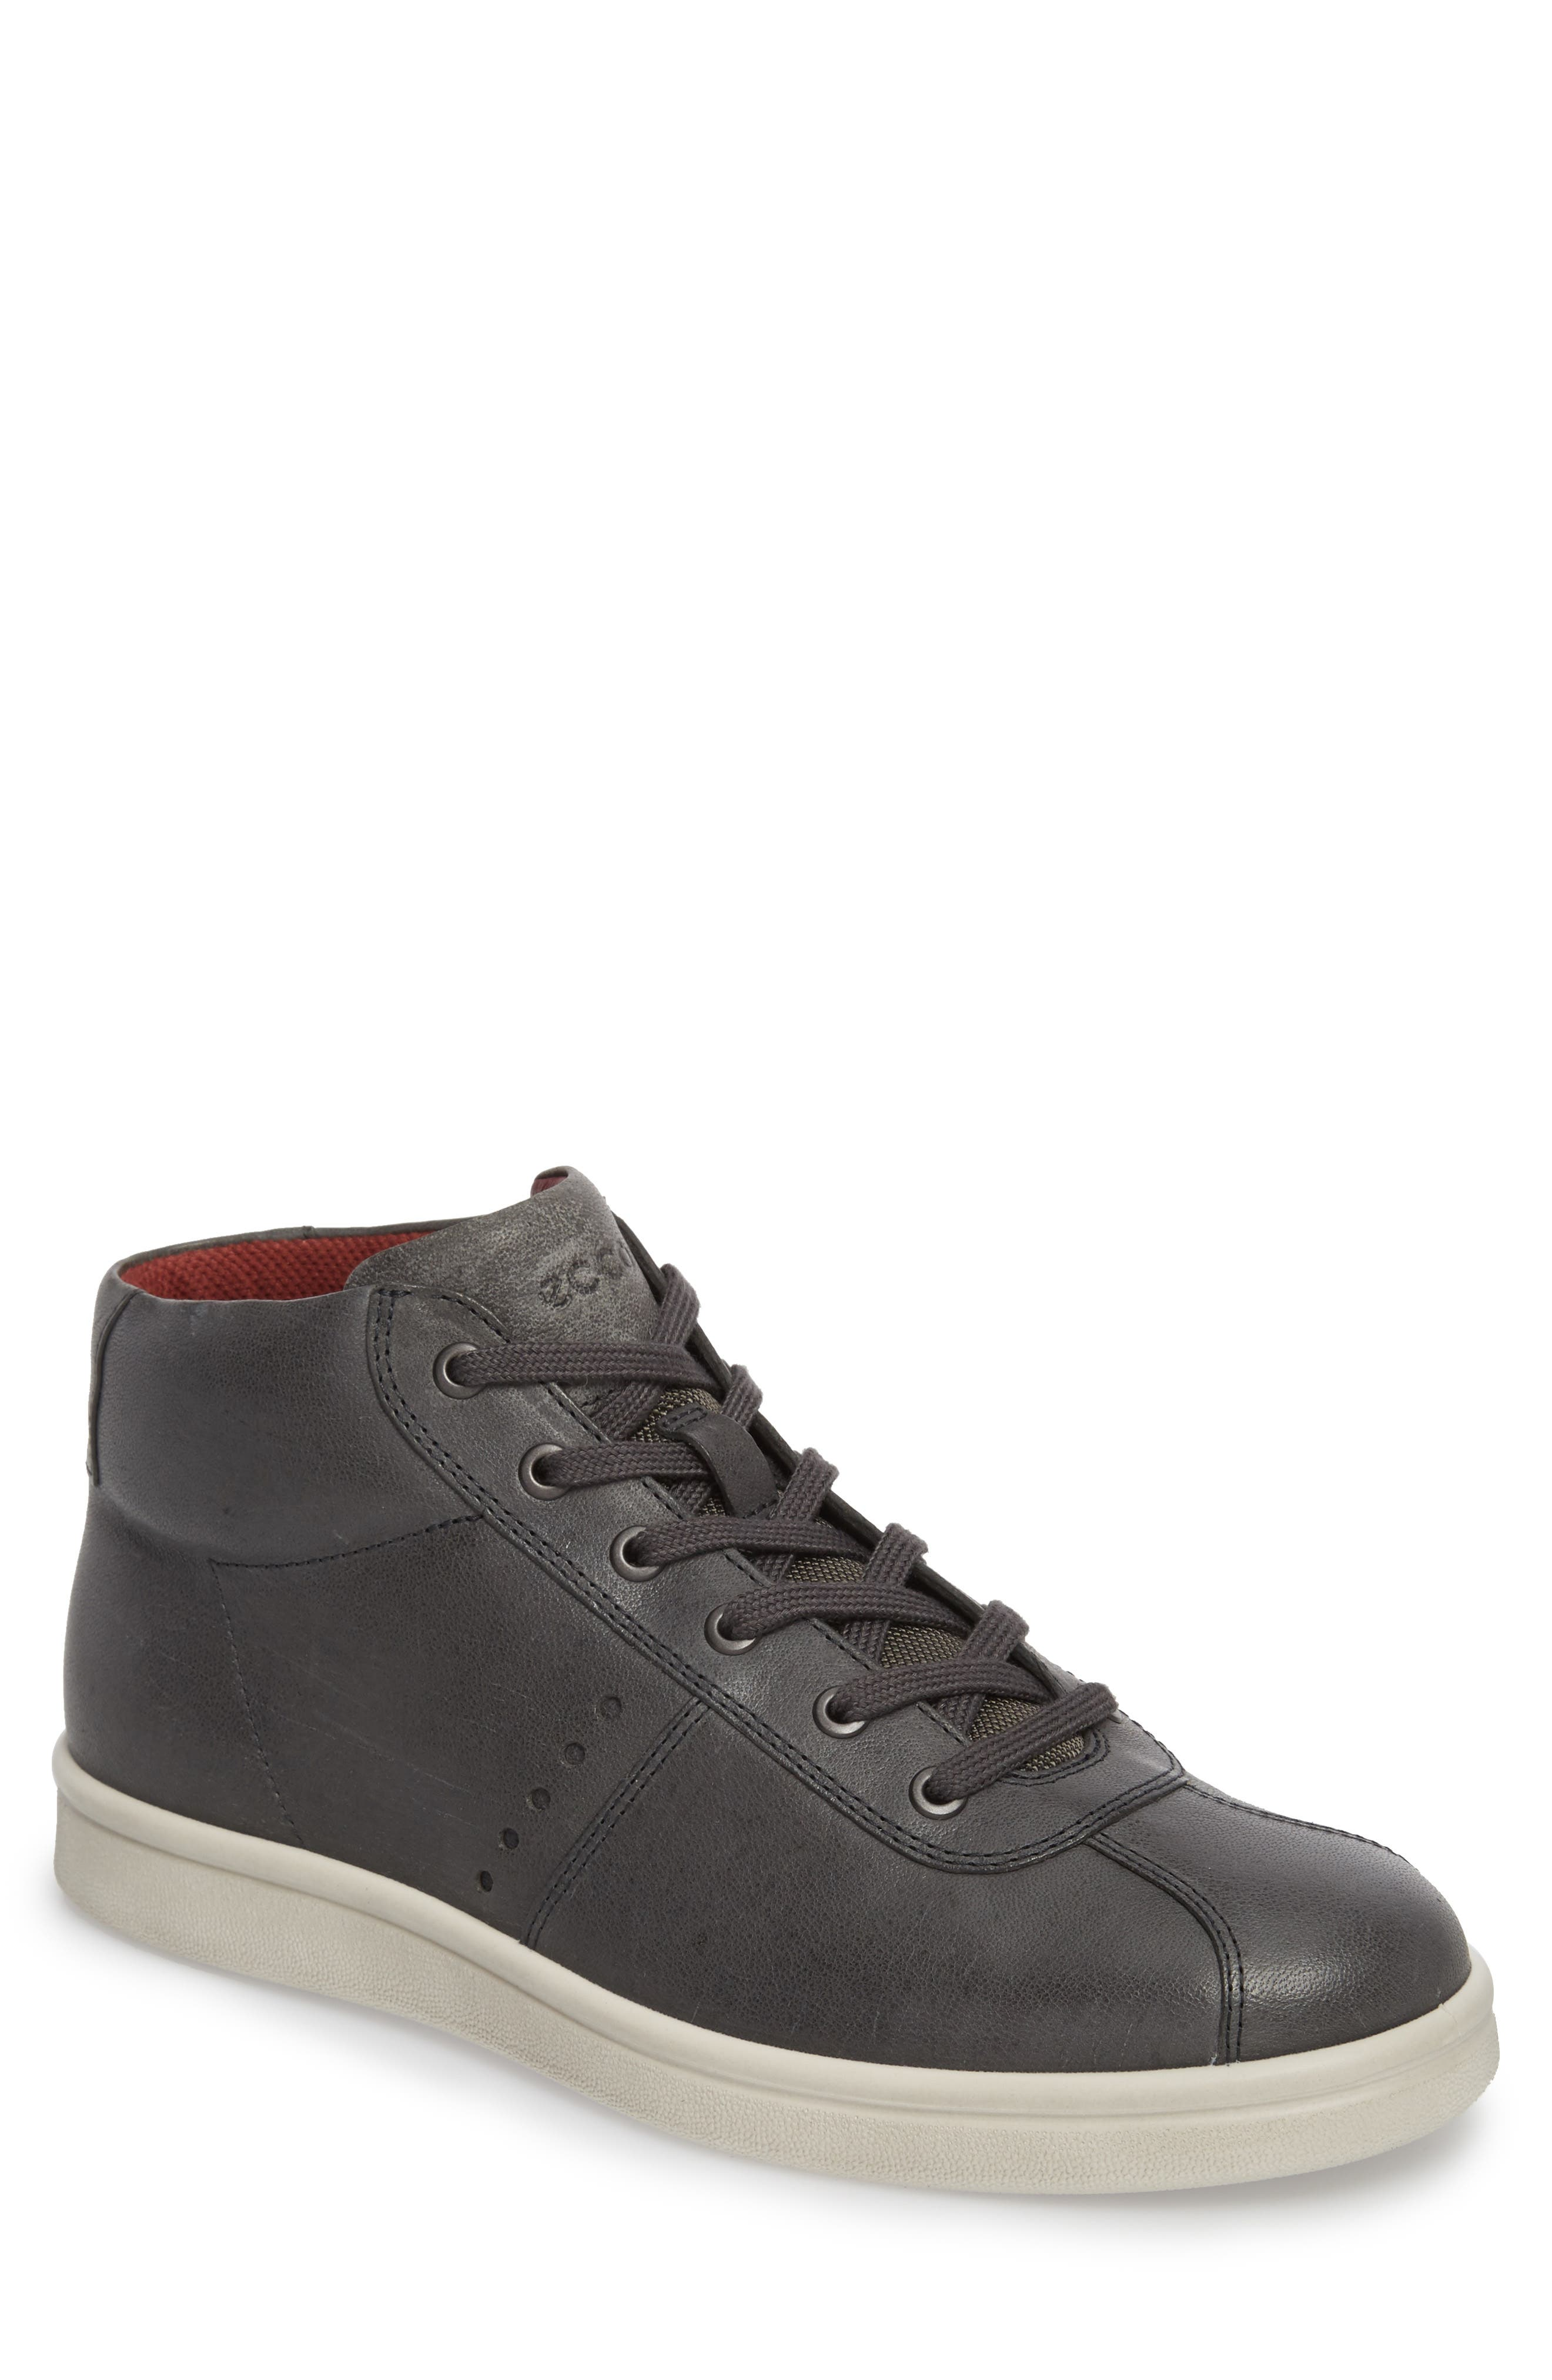 Kallum High Top Sneaker,                         Main,                         color, Moonless Leather